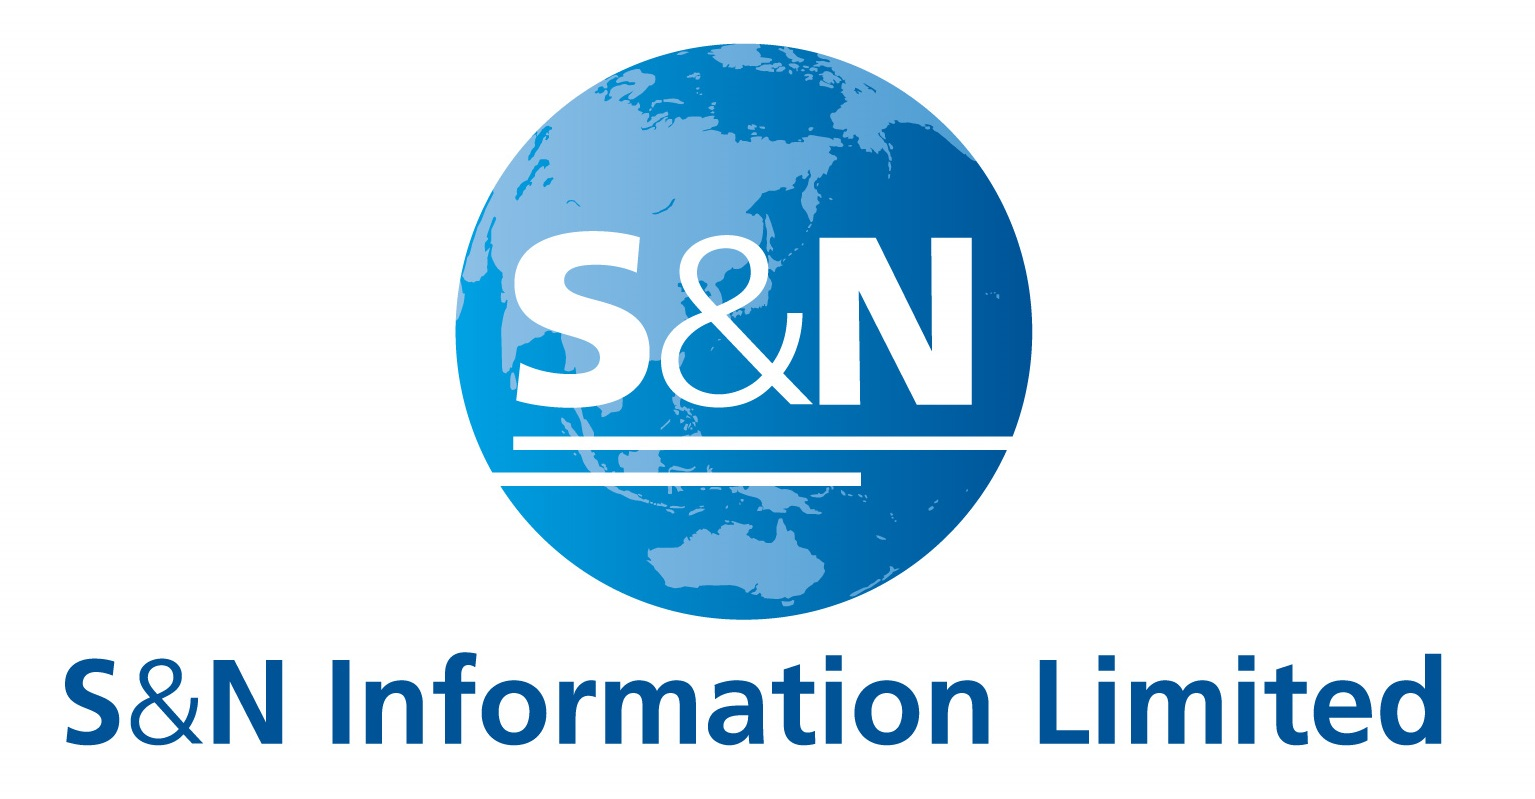 S&N Information Limited (LLC in Japan)